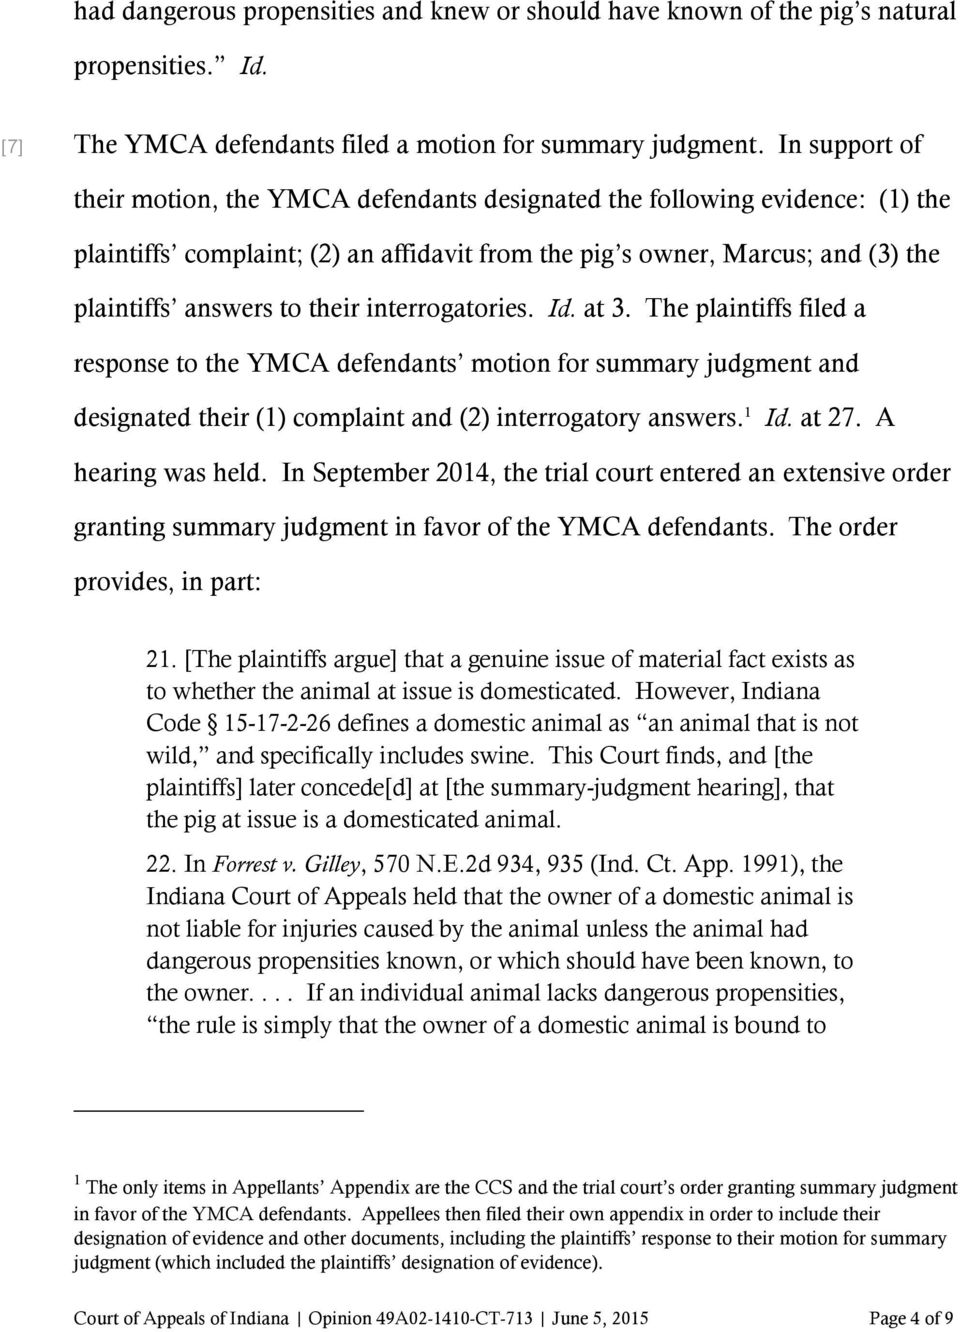 interrogatories. Id. at 3. The plaintiffs filed a response to the YMCA defendants motion for summary judgment and designated their (1) complaint and (2) interrogatory answers. 1 Id. at 27.